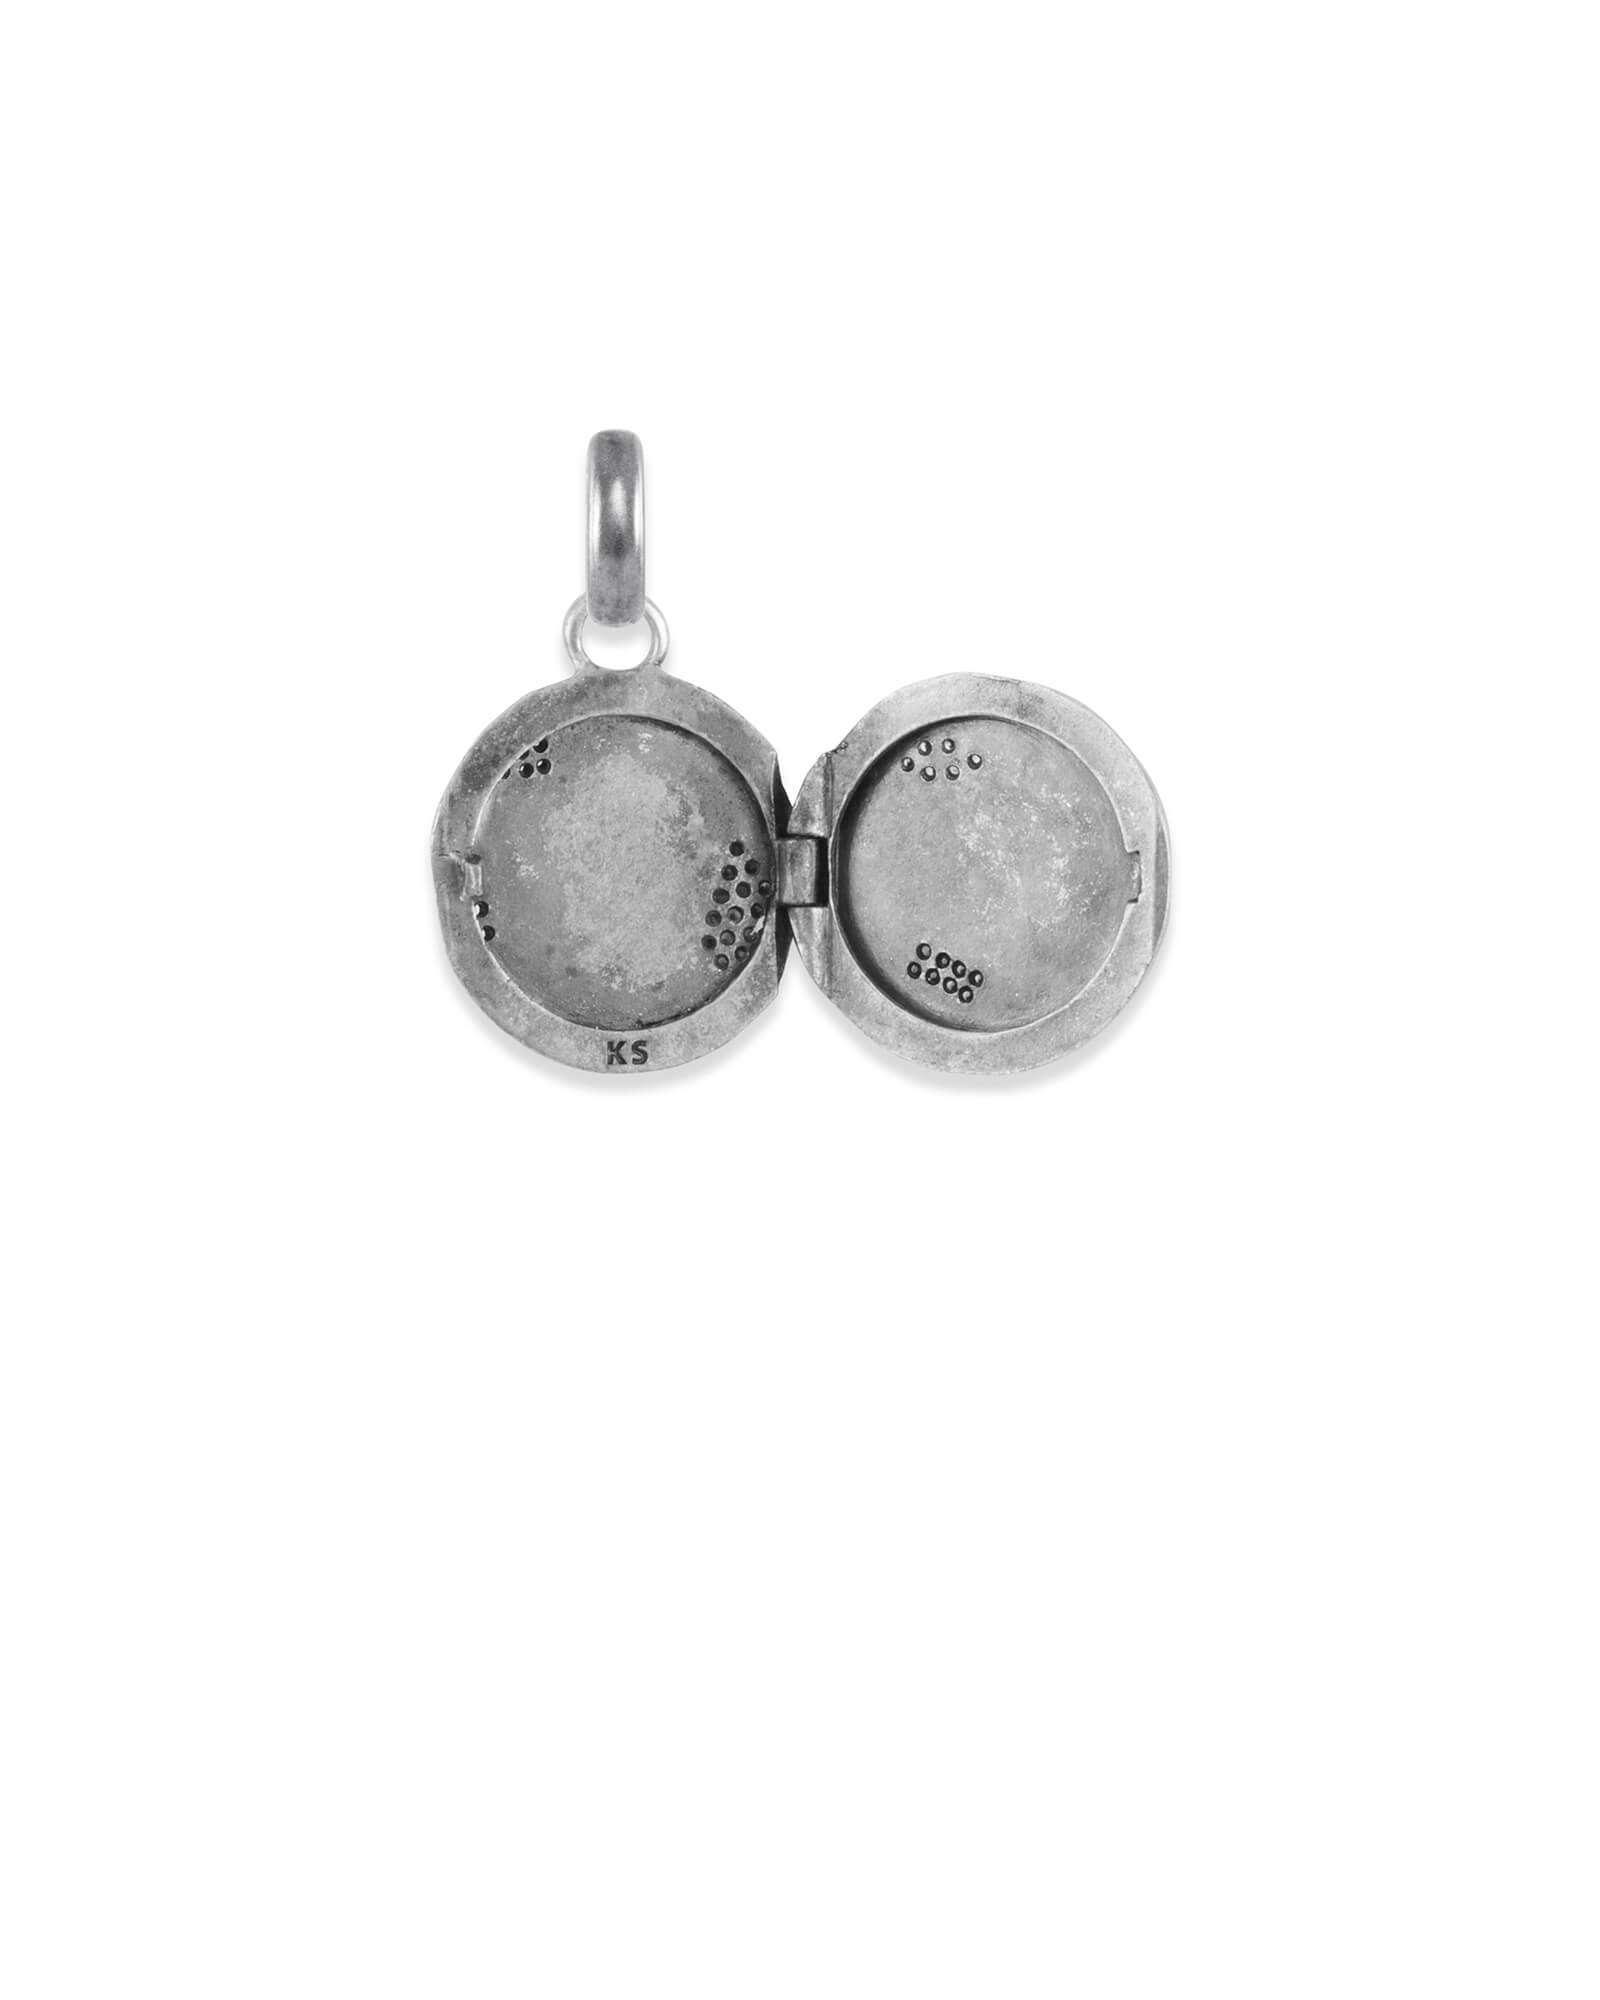 Pave Locket Charm in Vintage Silver